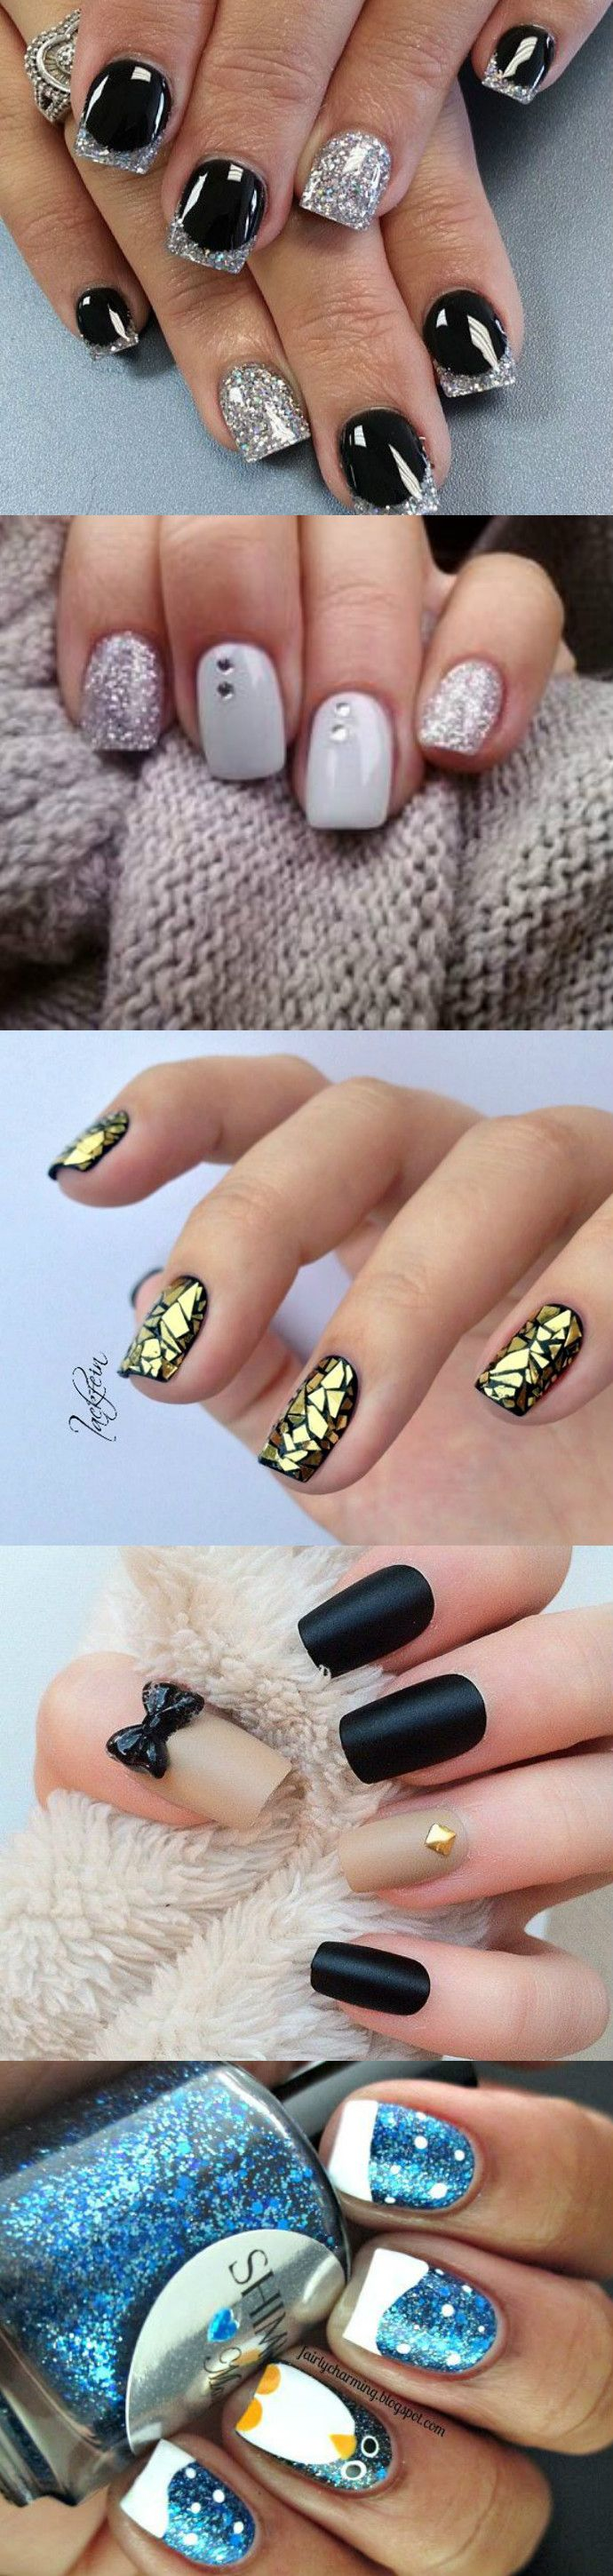 55 Stunning Nail Art & Designs 2016 | Inspiration, Nail nail and Makeup